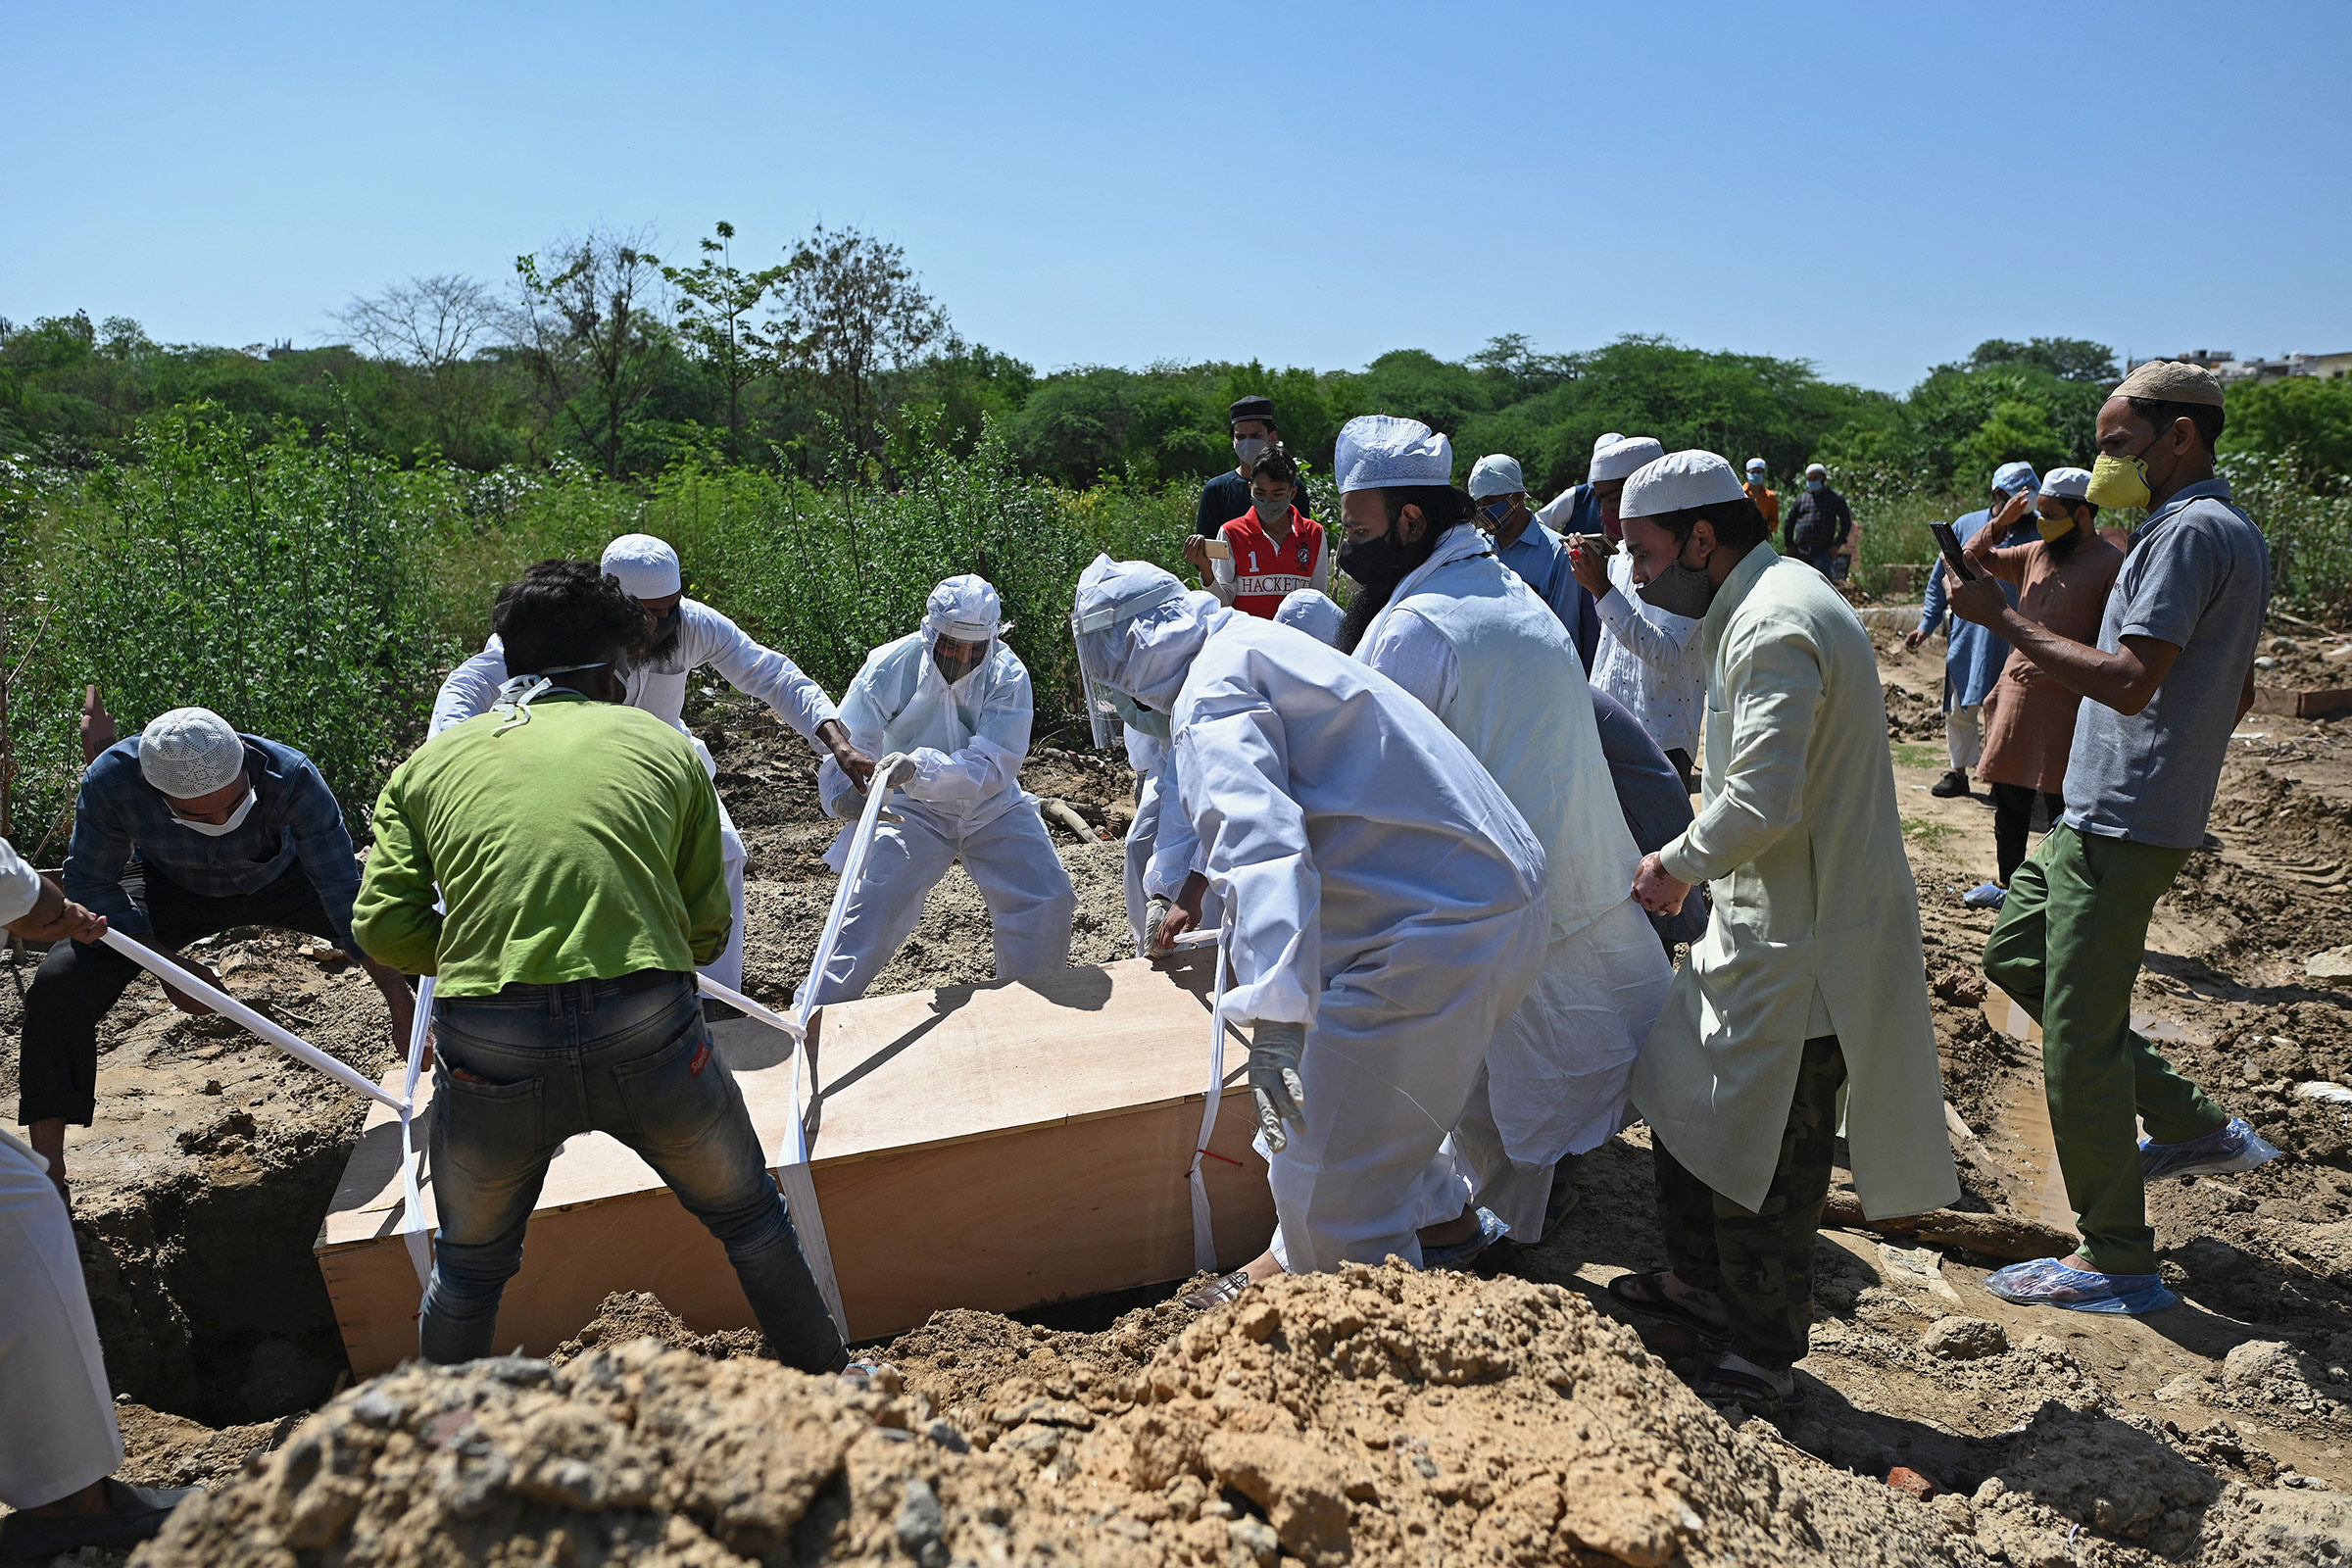 Relatives bury the body of a Covid-19 victim at a graveyard in New Delhi, on May 22.